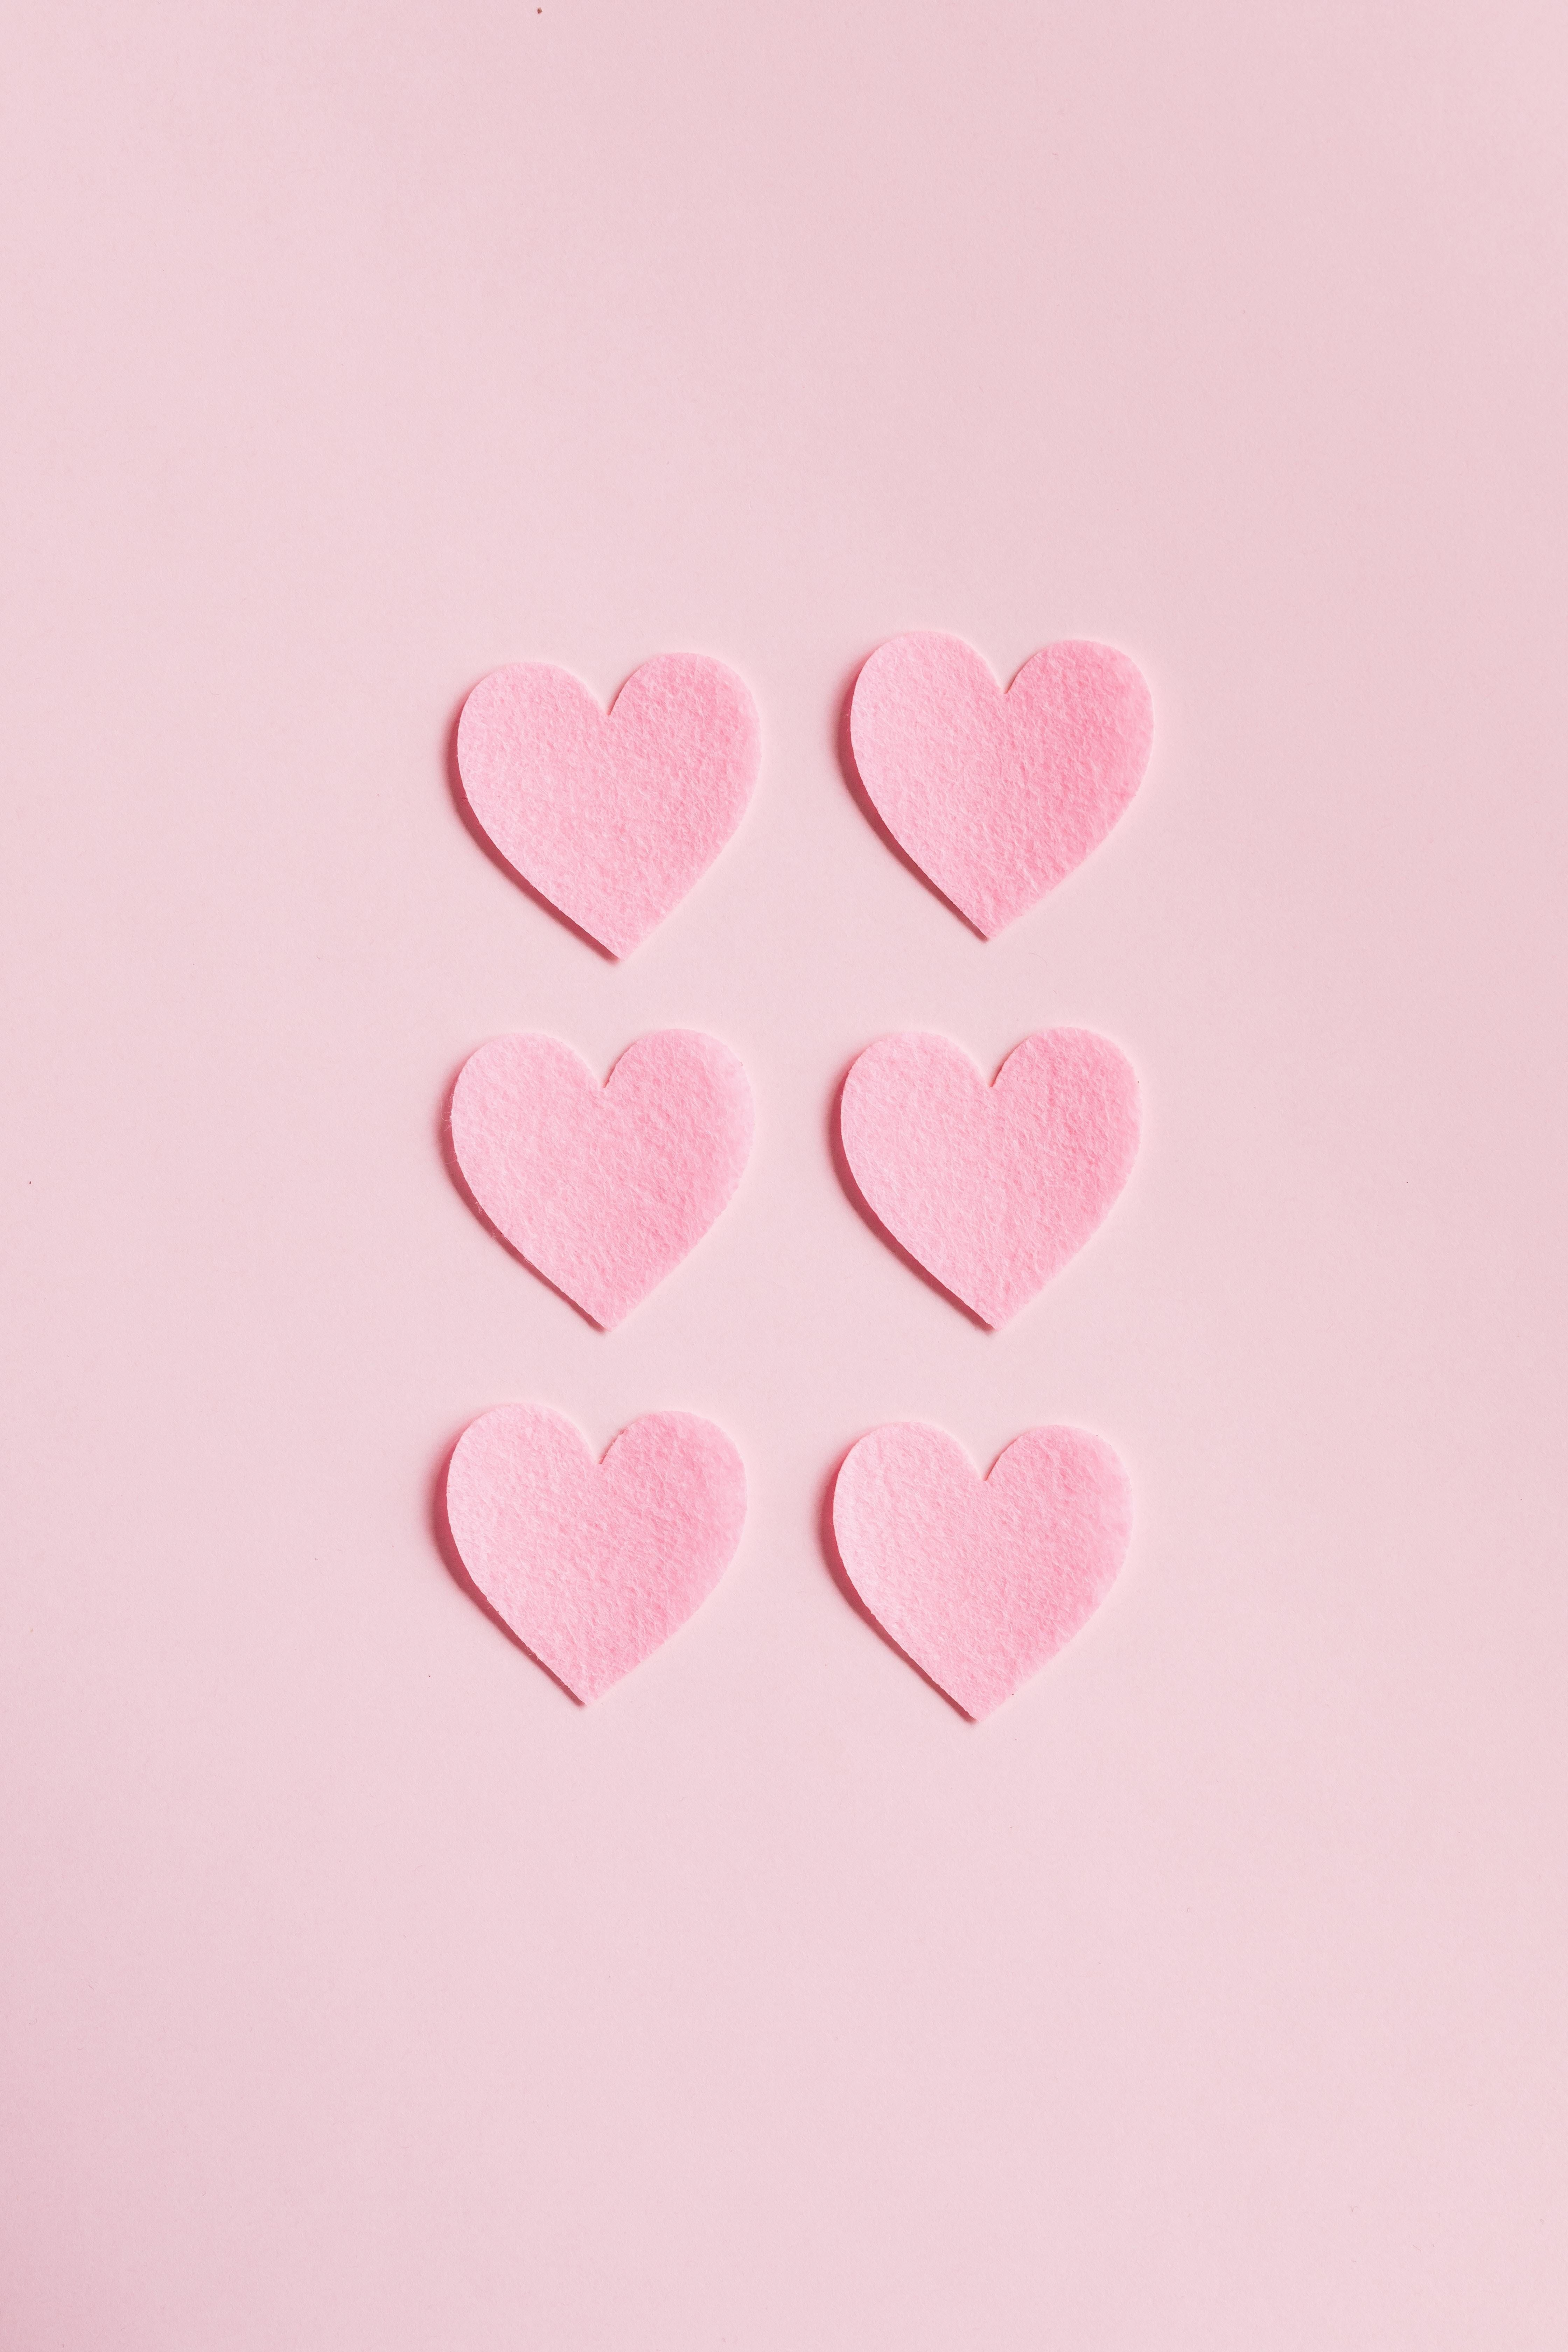 Share the love this Valentines Day with Heart Smiles